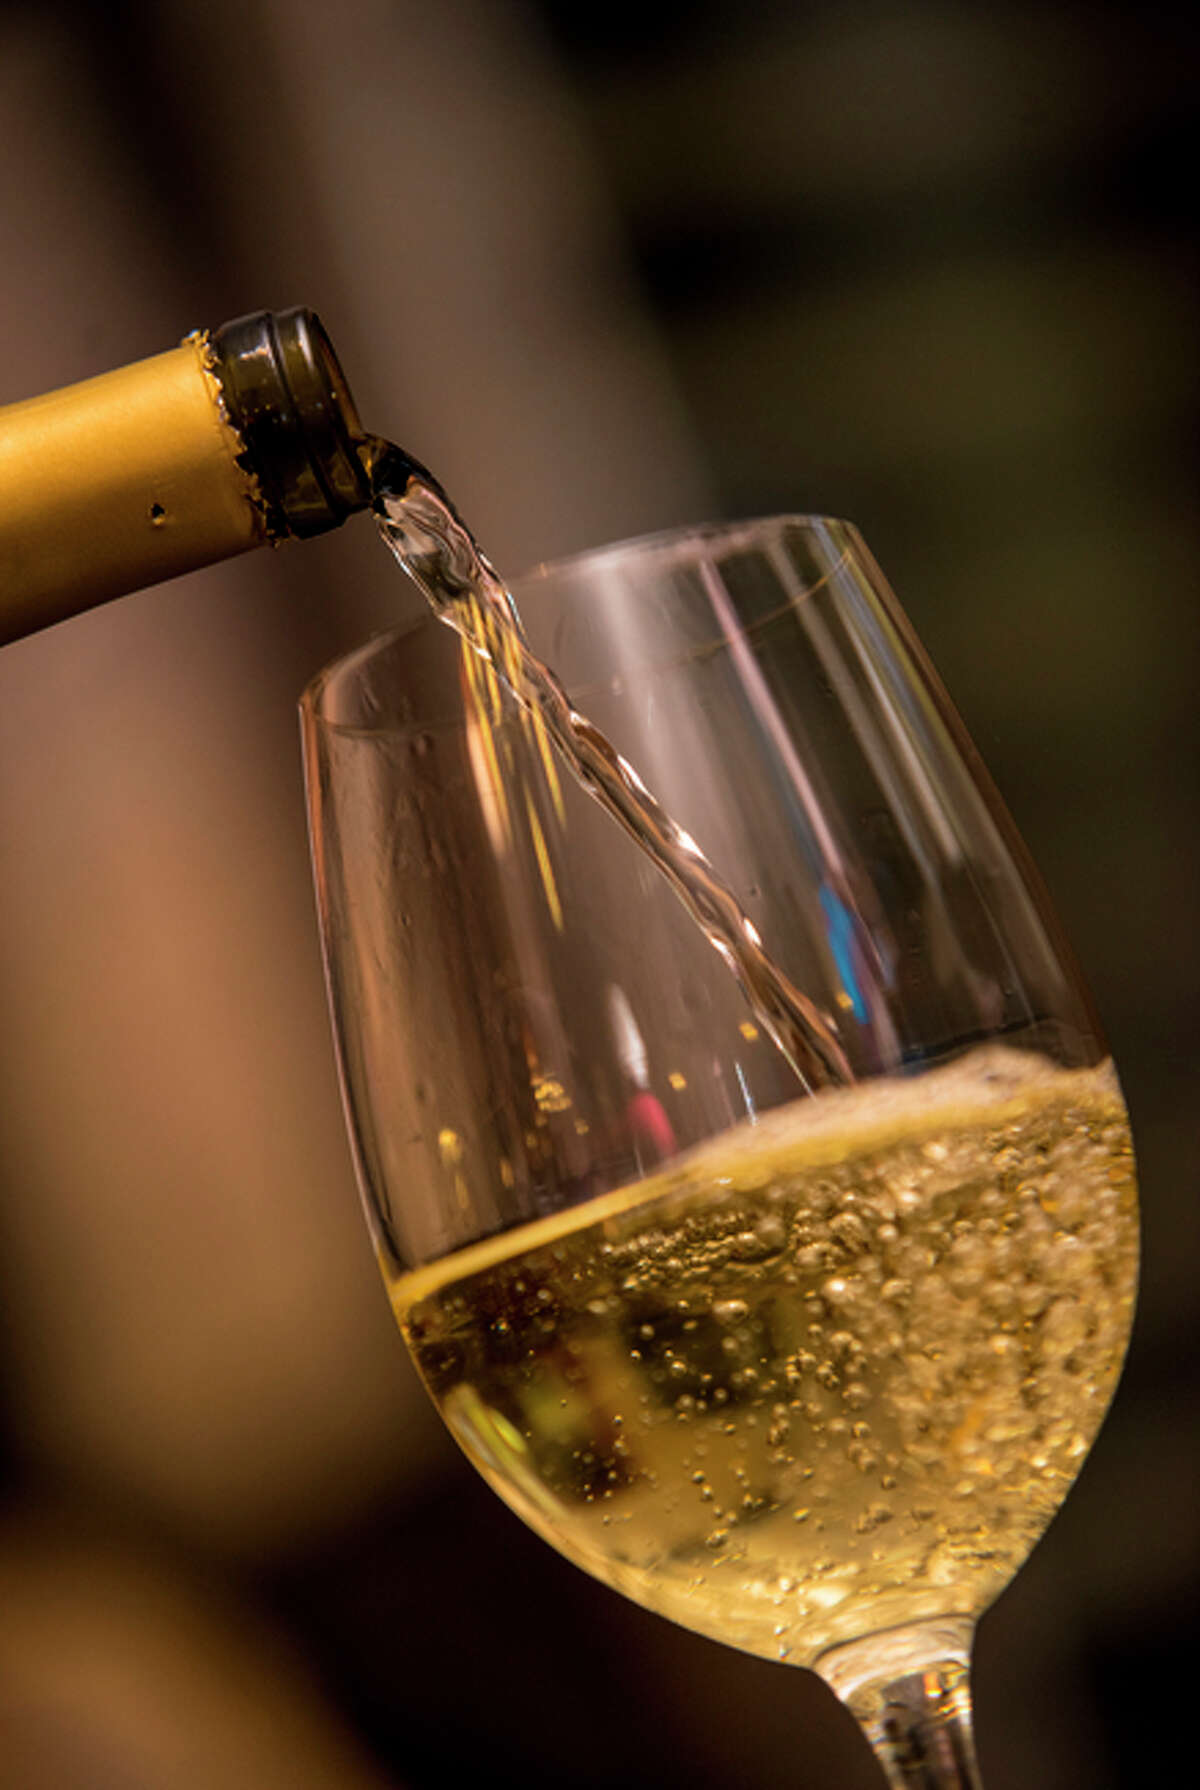 More than two dozen California wine producers of well-known brands are named in the lawsuit filed in L.A. over arsenic levels.